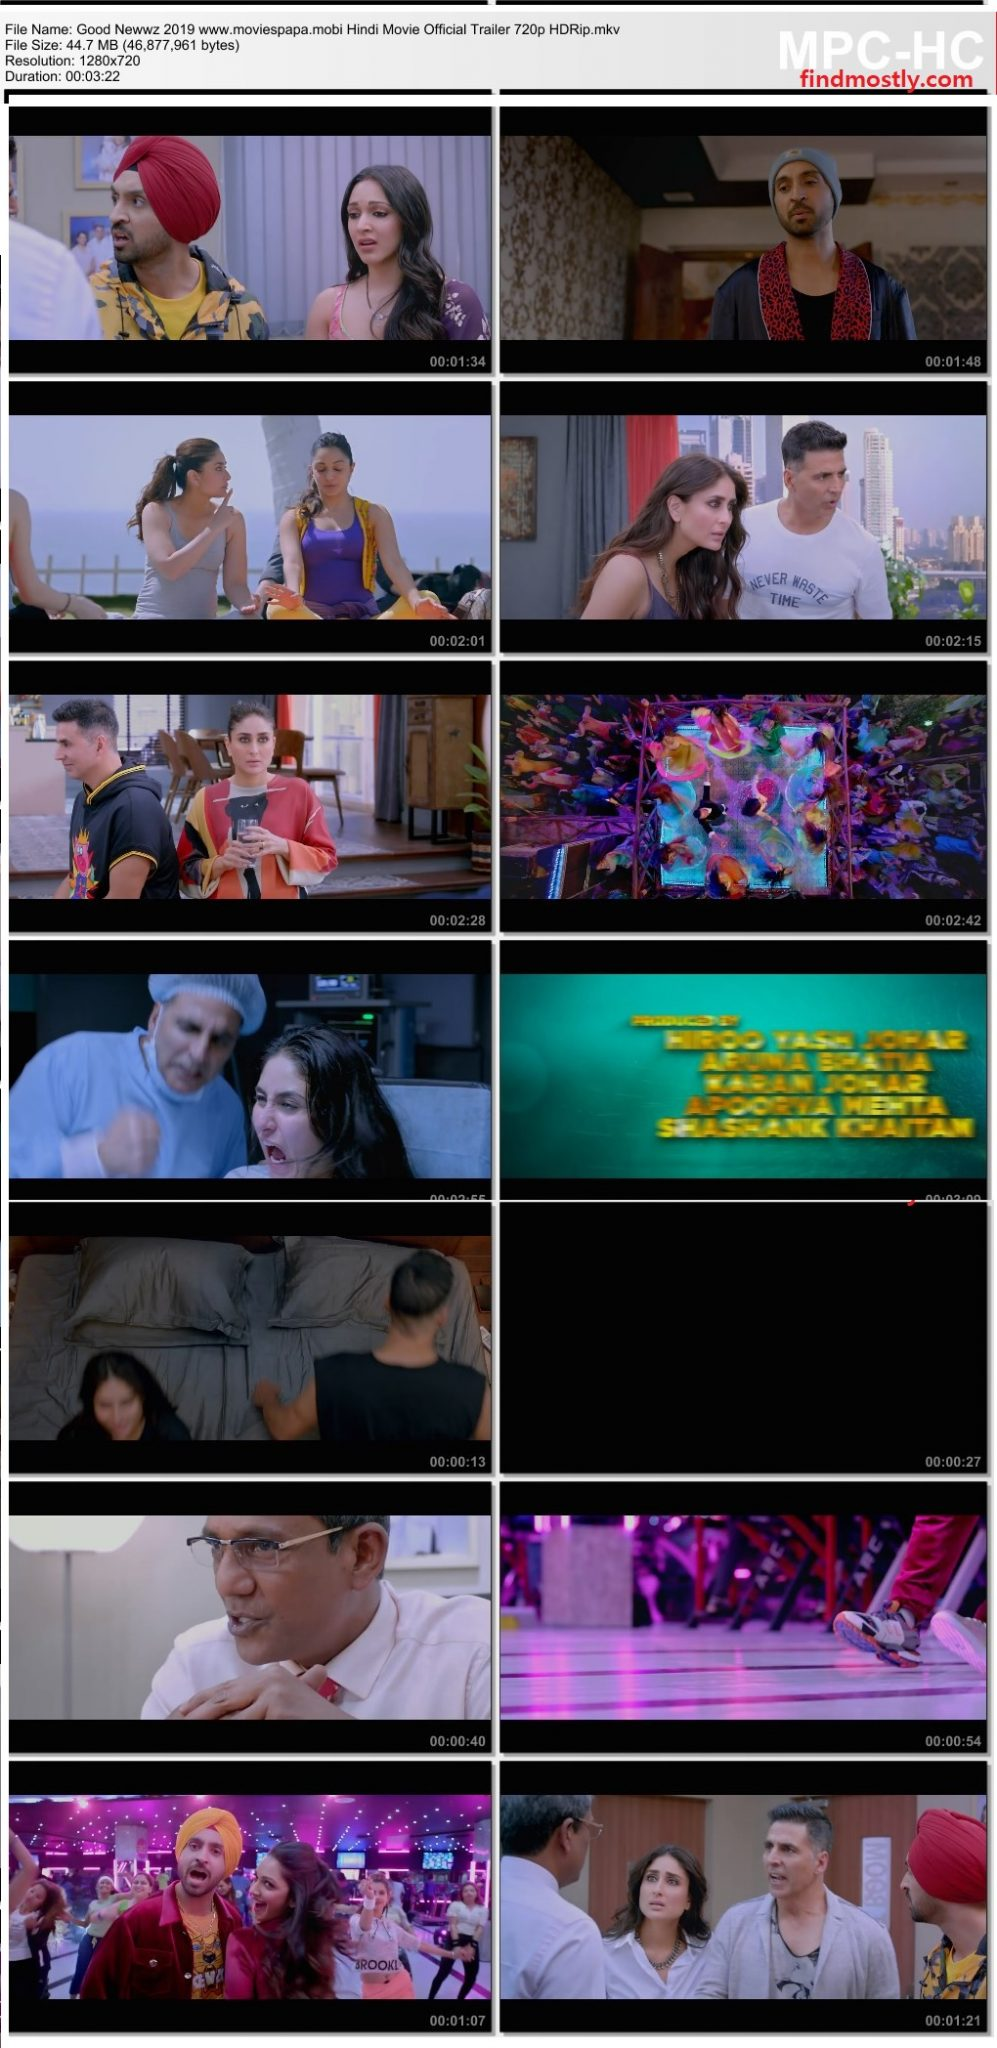 Good News Full Movie Download 123mkv 2019